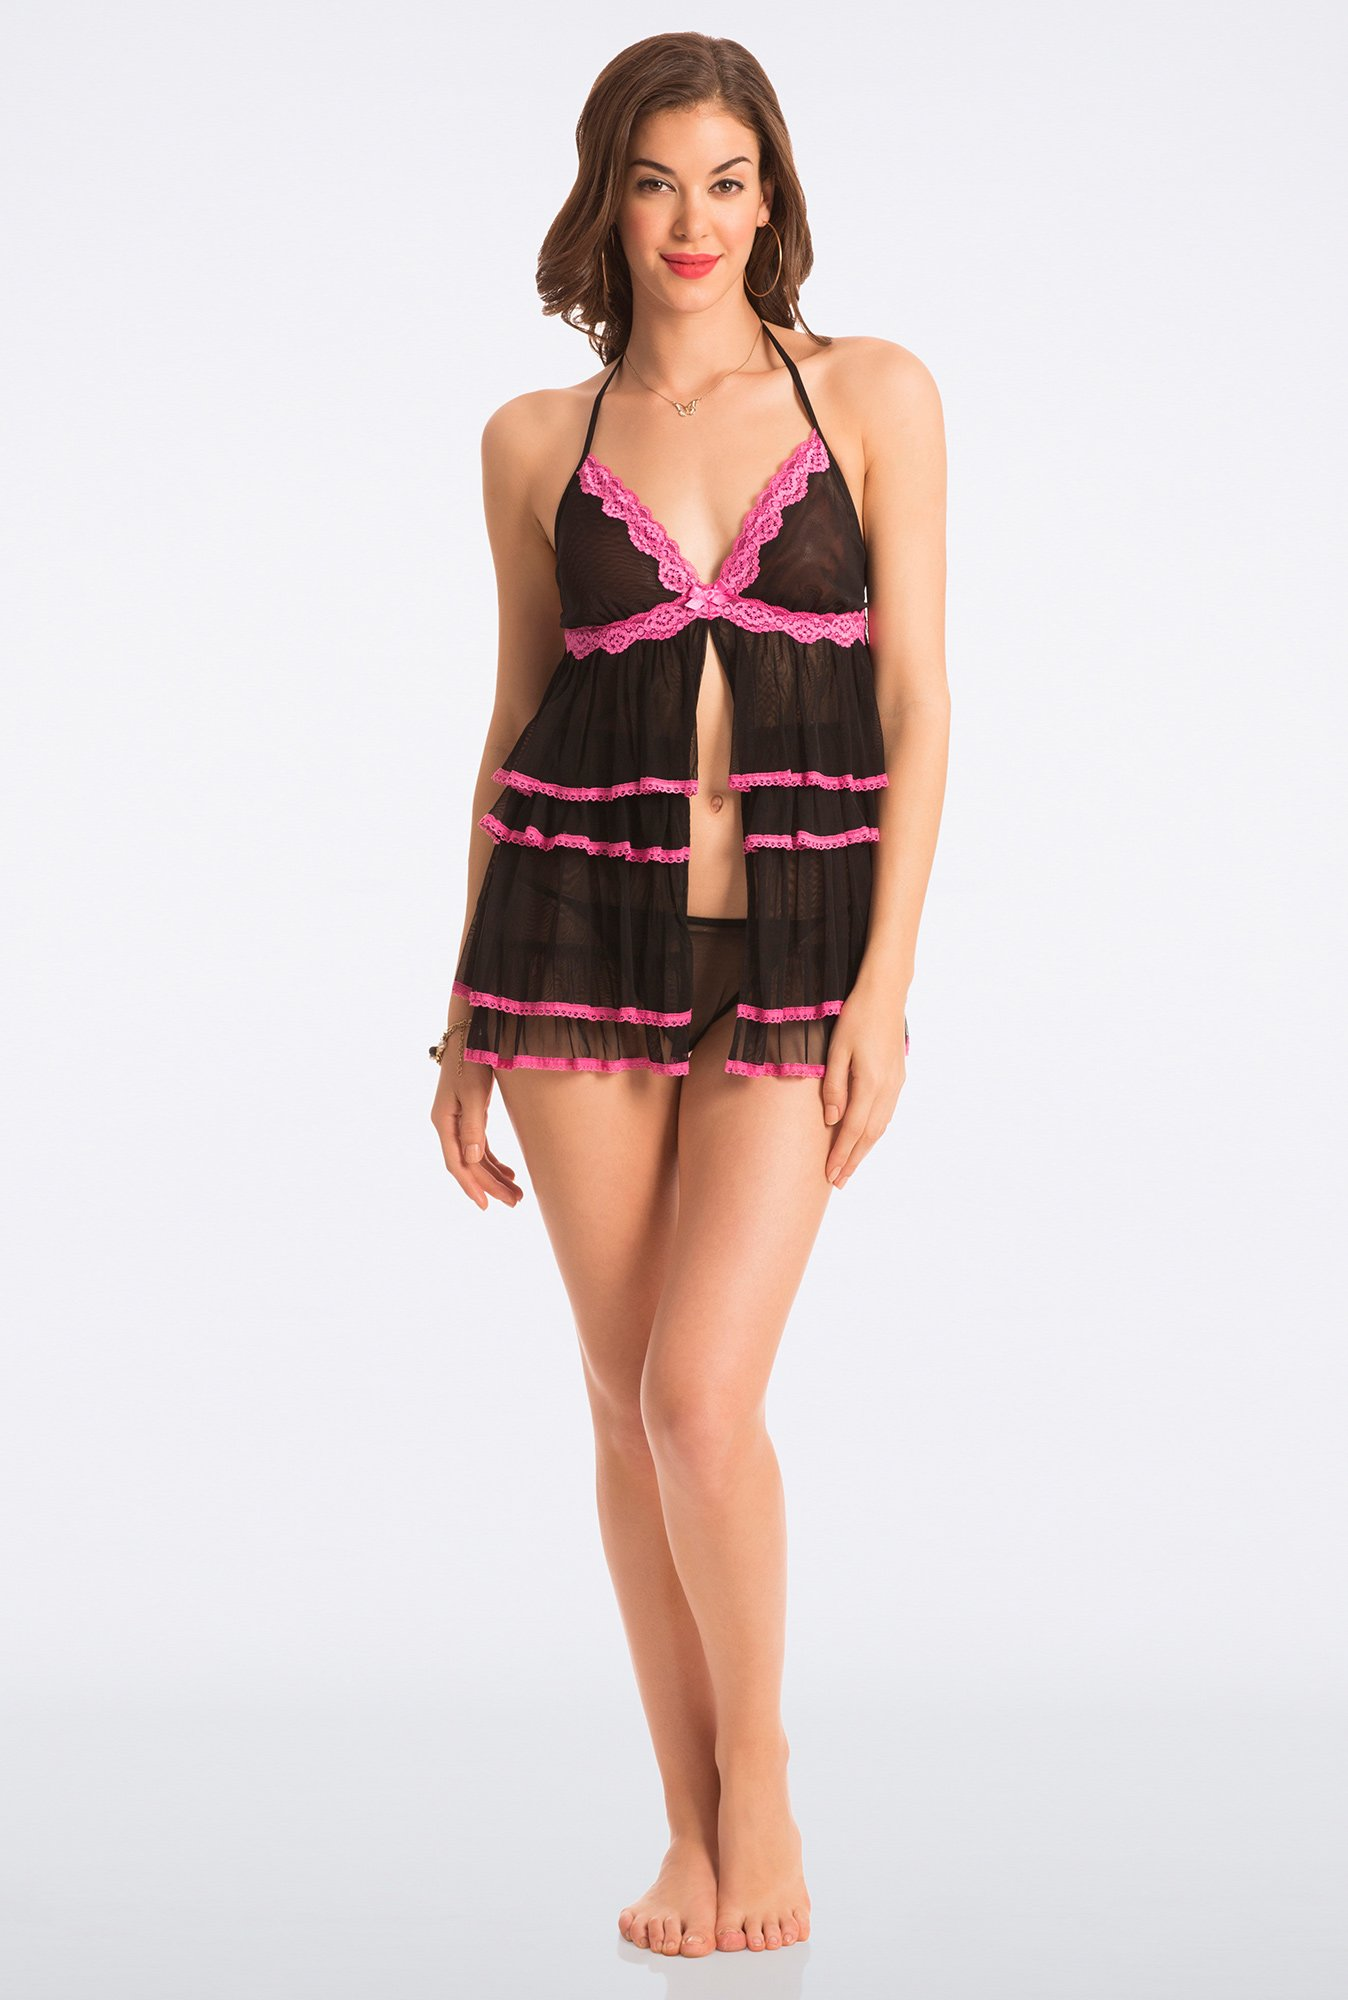 Pretty Secrets Black & Pink Lace Babydoll